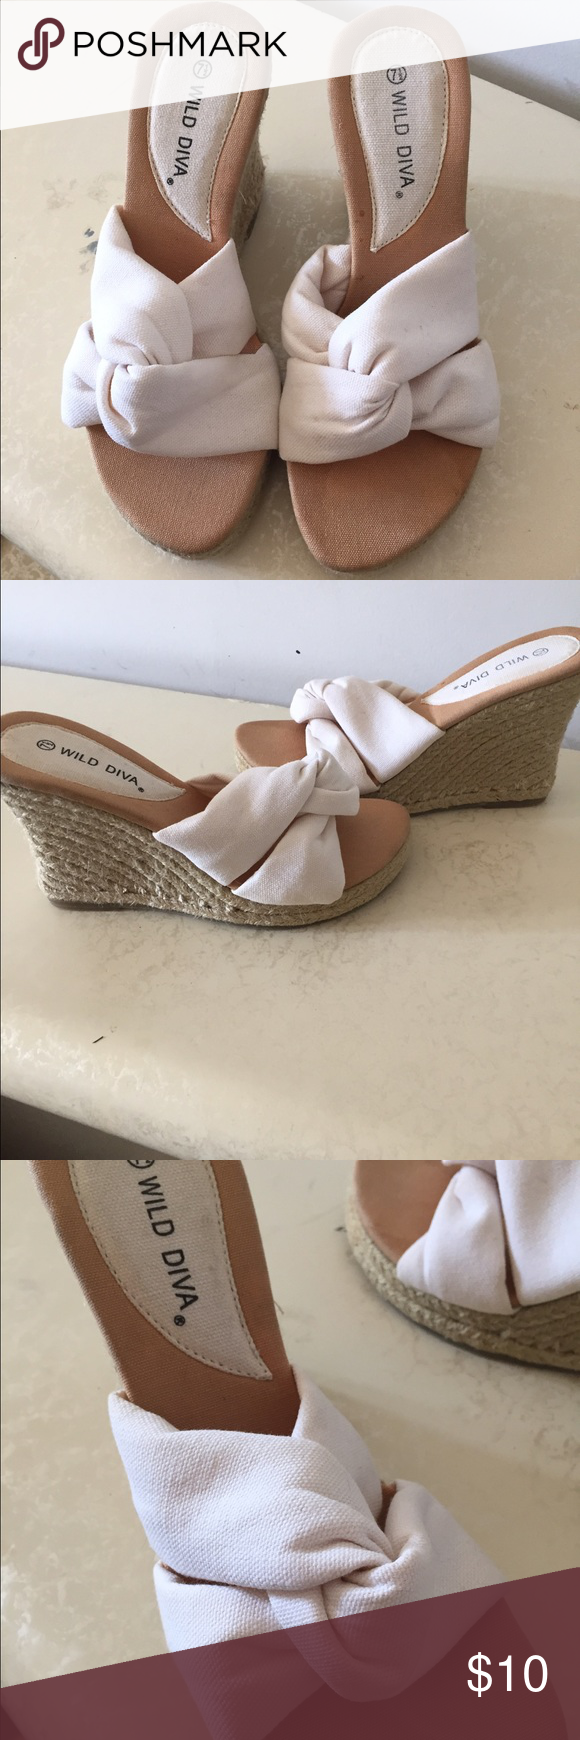 Woman's White and Tan Wedge Shoes These are a pair of Woman's White and tan Wedge open toe sandals. Only wore once . In excellent condition no stains or appearing marks. Size 71/2 Shoes Wedges